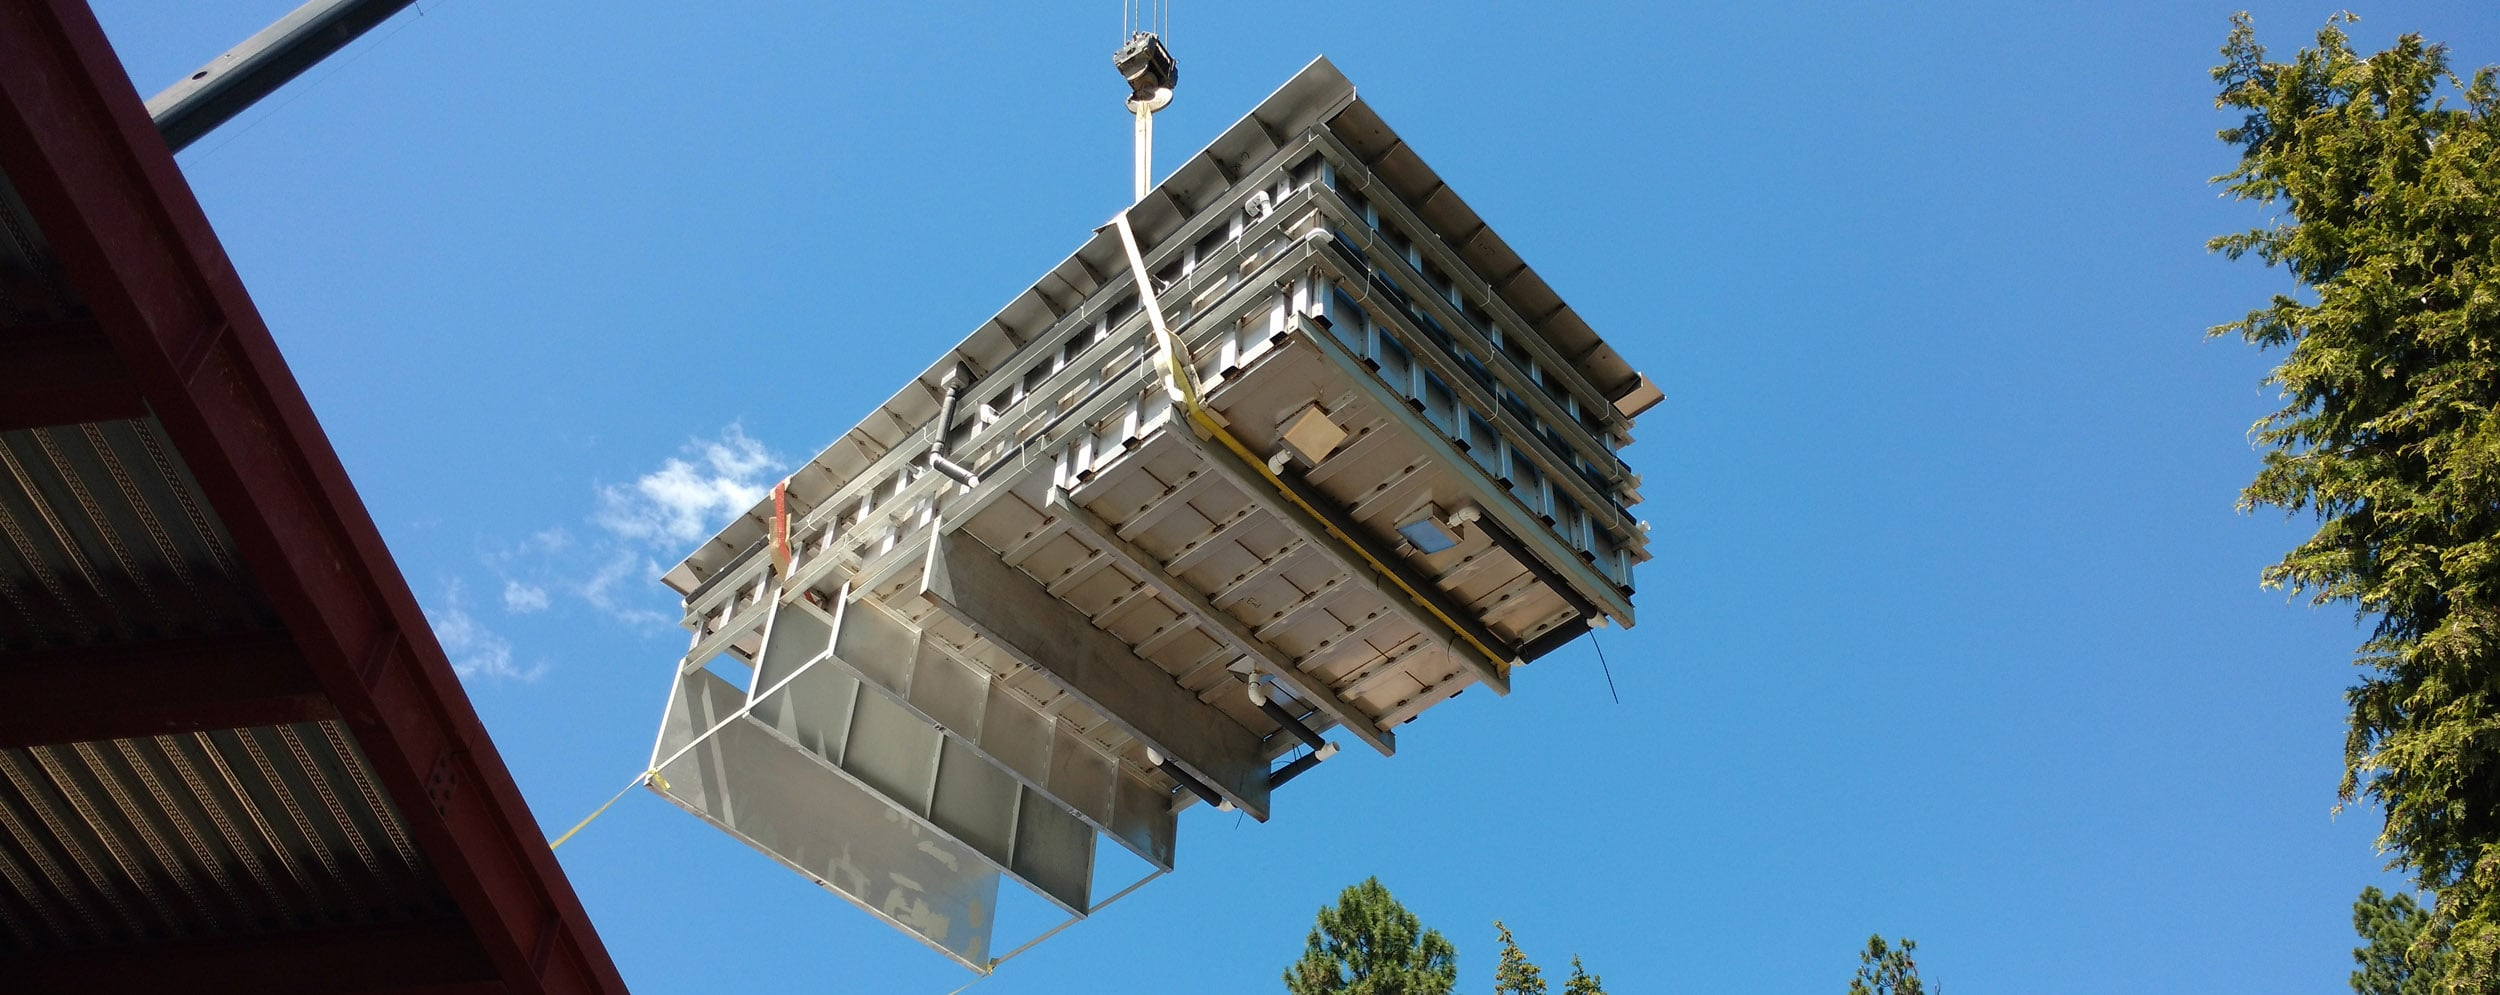 tesoro hot tub crane